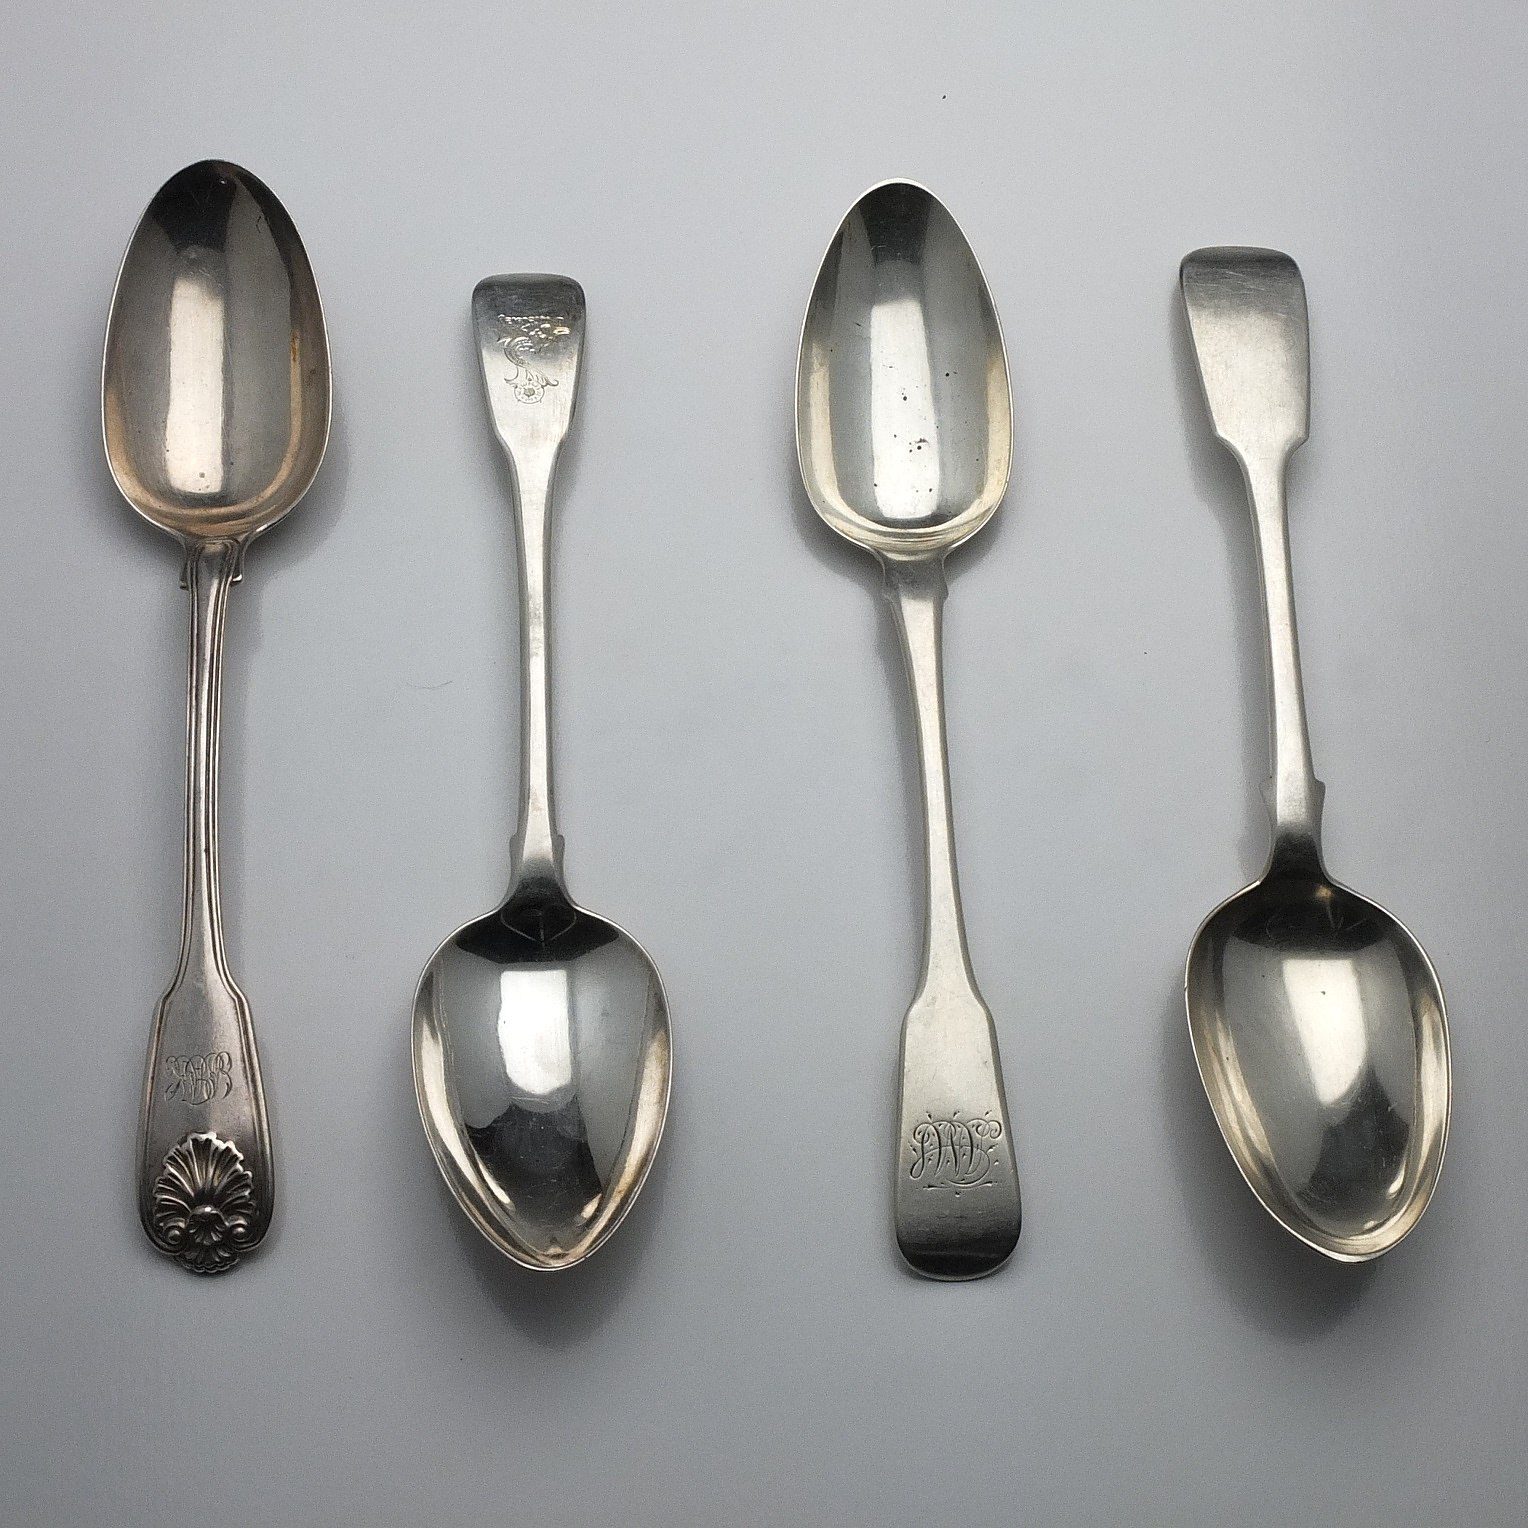 'Four Sterling Silver Table Spoons London 1808, 1815, 1825 and 1839'